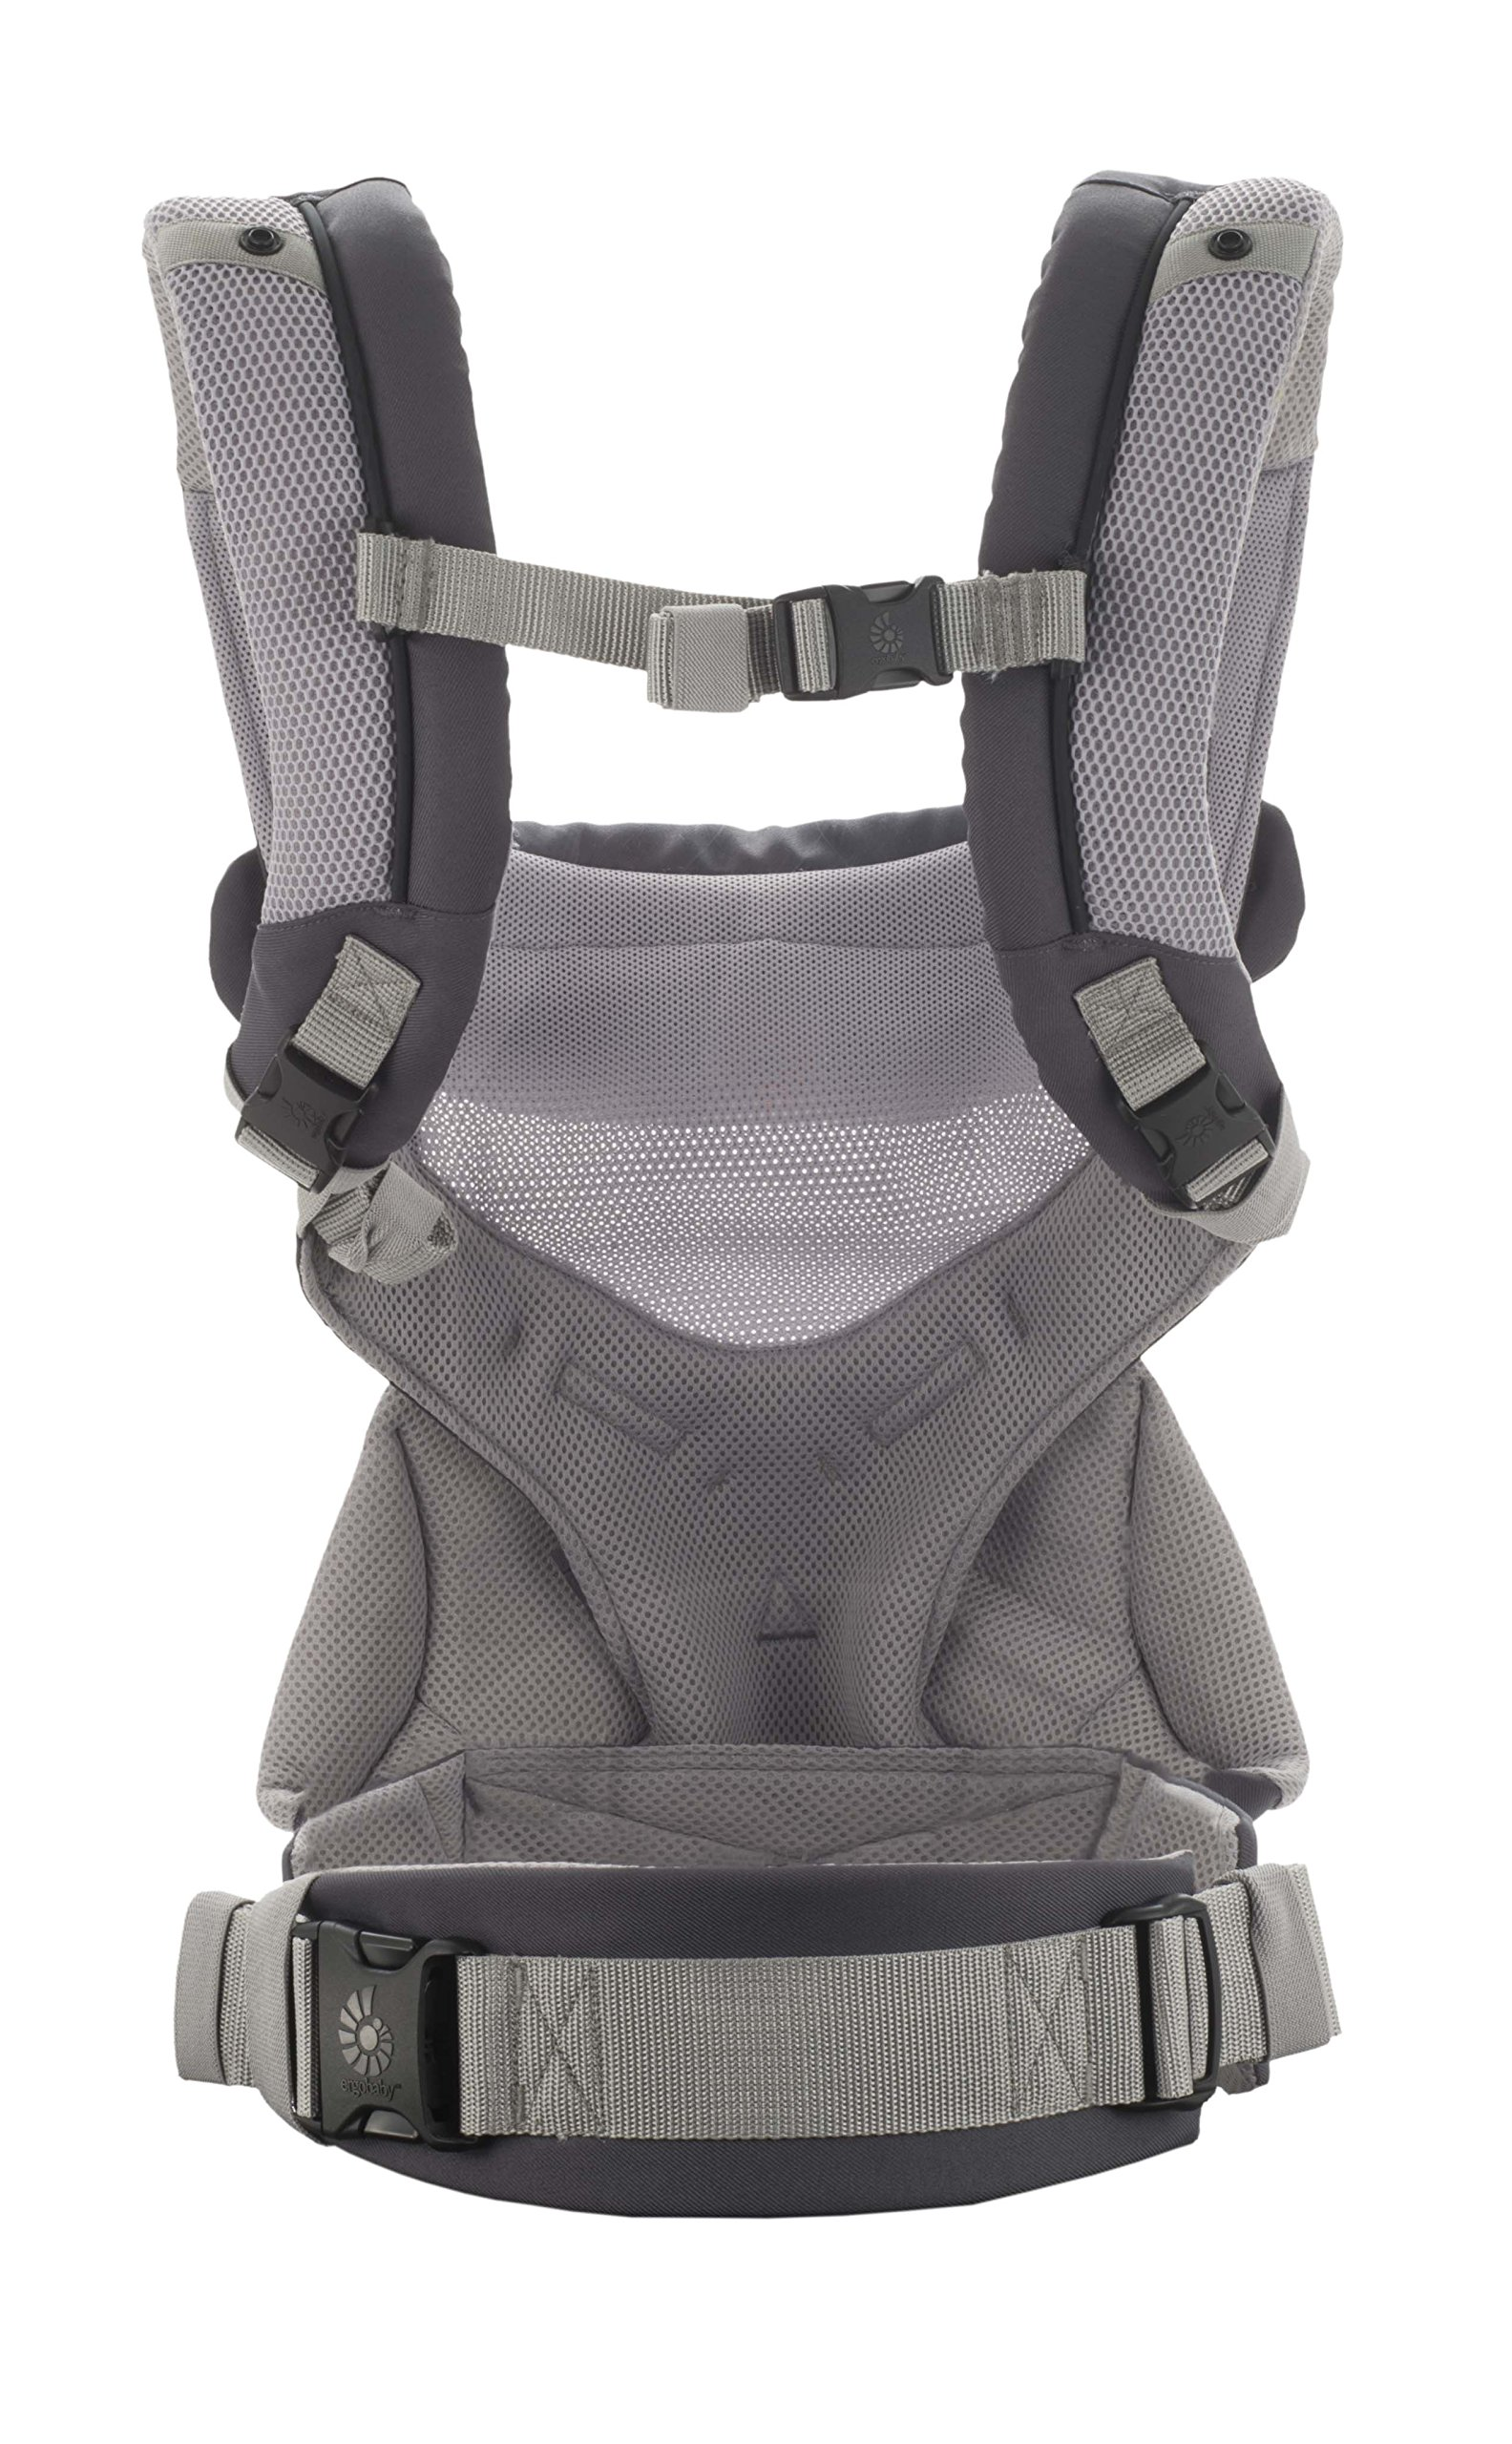 Ergobaby Baby Carrier for Toddler, 360 Cool Air Carbon Grey, 4-Position Ergonomic Child Carrier and Backpack Ergobaby Ergonomic baby carrier for the summer, with 4 ergonomic carry positions: front-inward, back, hip, and front-outward. The carrier is suitable for babies and toddlers weighing 5.5-15 kg, and can be used as a back carrier. Also with insert for newborn babies weighing 3.2-5.5 kg (7-12 lbs), sold separately. NEW - The waistbelt with lumbar support can be worn a little higher or lower to support the lower back and provide optimal comfort, and has adjustable padded shoulder straps. The carrier is suitable for men and women. Maximum baby comfort - Breathable 3D air mesh material provides an optimal temperature for your baby on warm days. The structured bucket seat supports the correct frog-leg position for the baby. The carrier also has a neck support and privacy hood with 50+ UV sun protection. 3